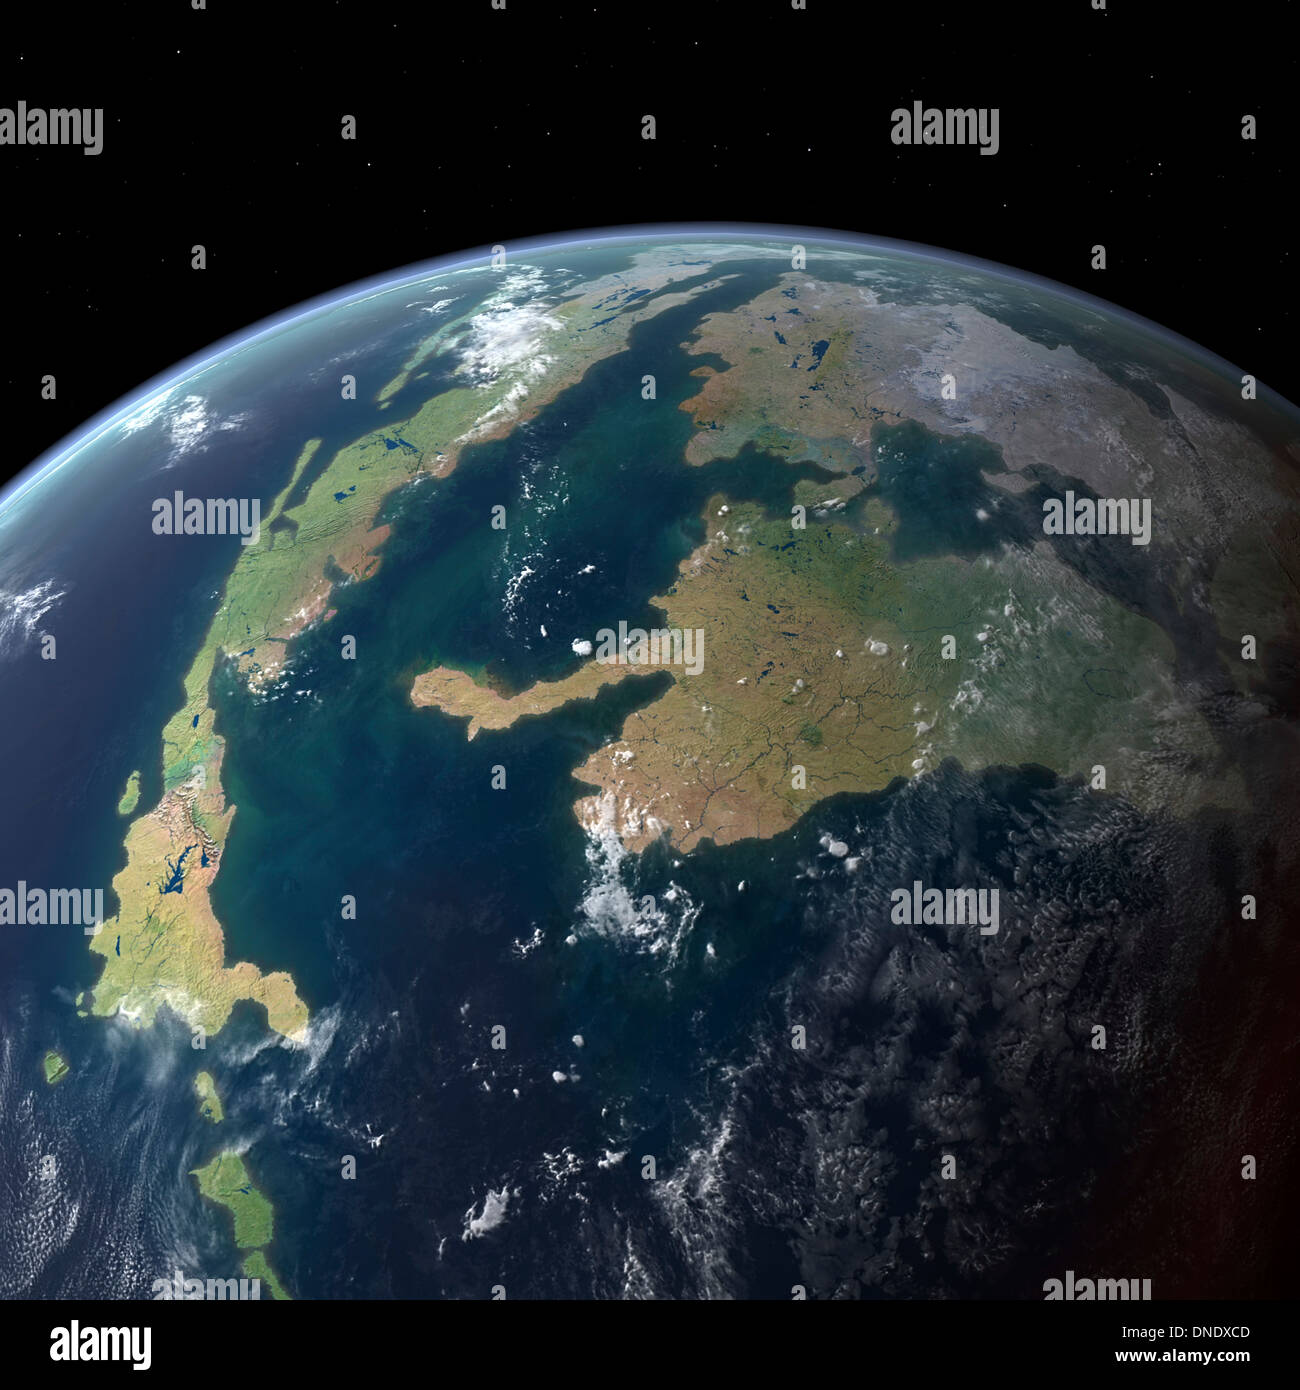 The Western Interior Seaway as seen 75 million years ago from Earth orbit. - Stock Image